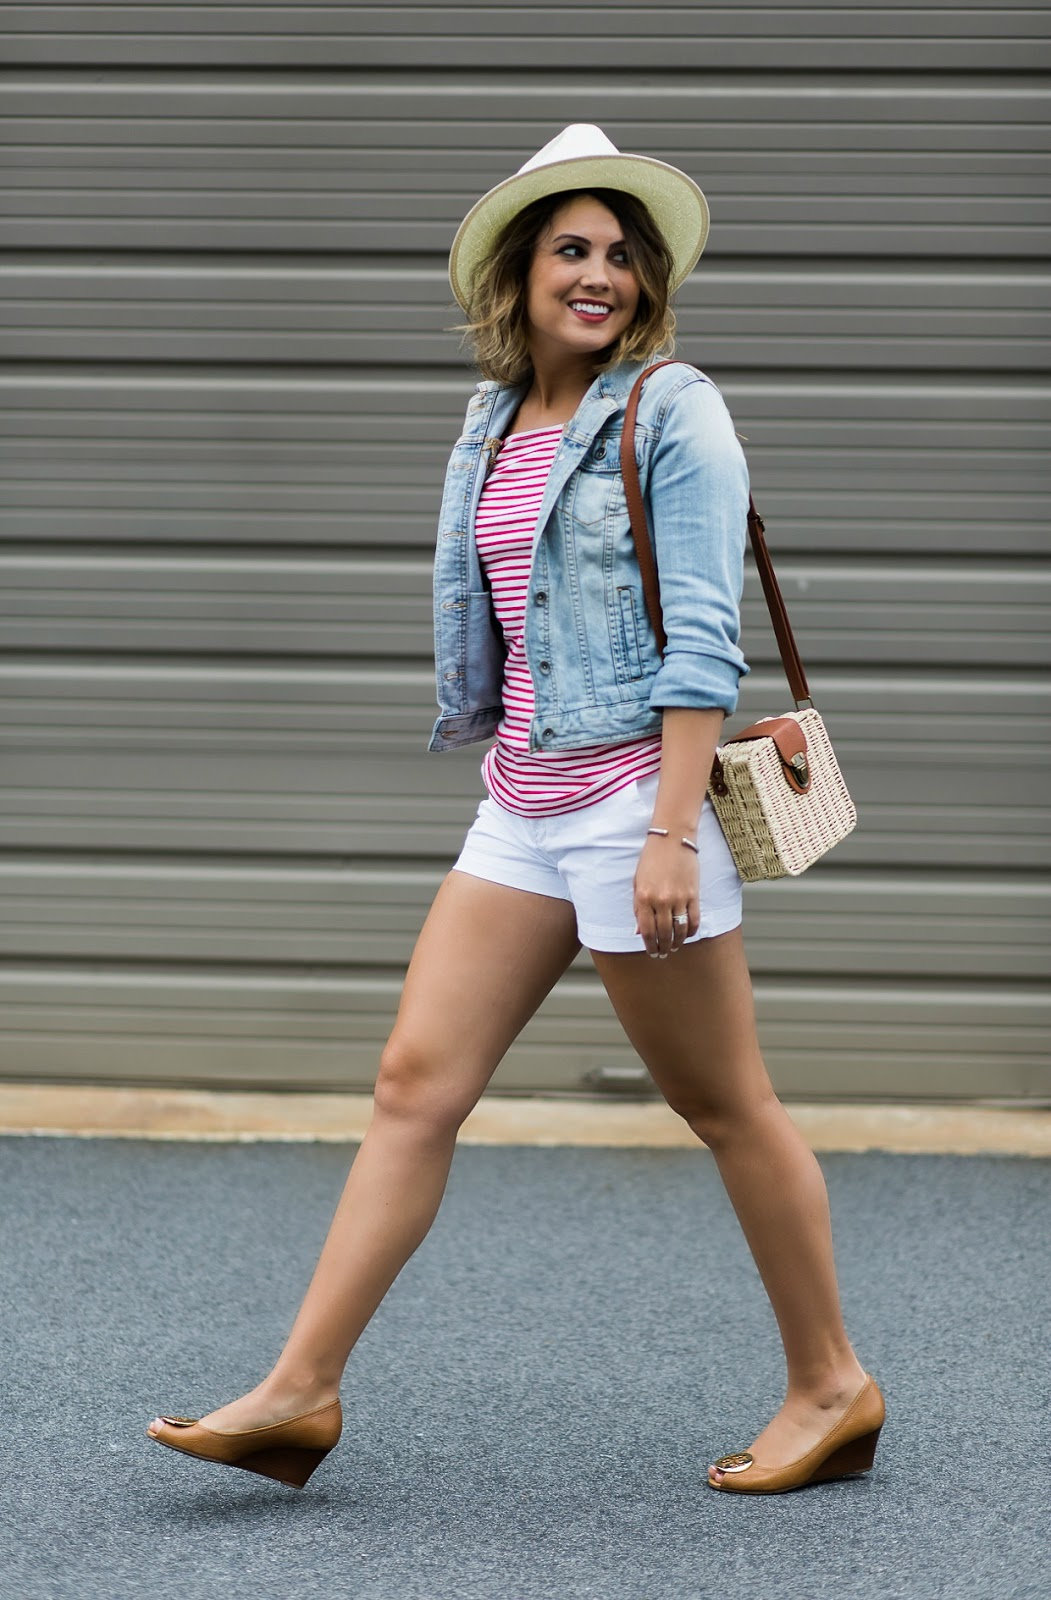 j crew tee, denim jacket, white shorts outfit, tory burch wedges